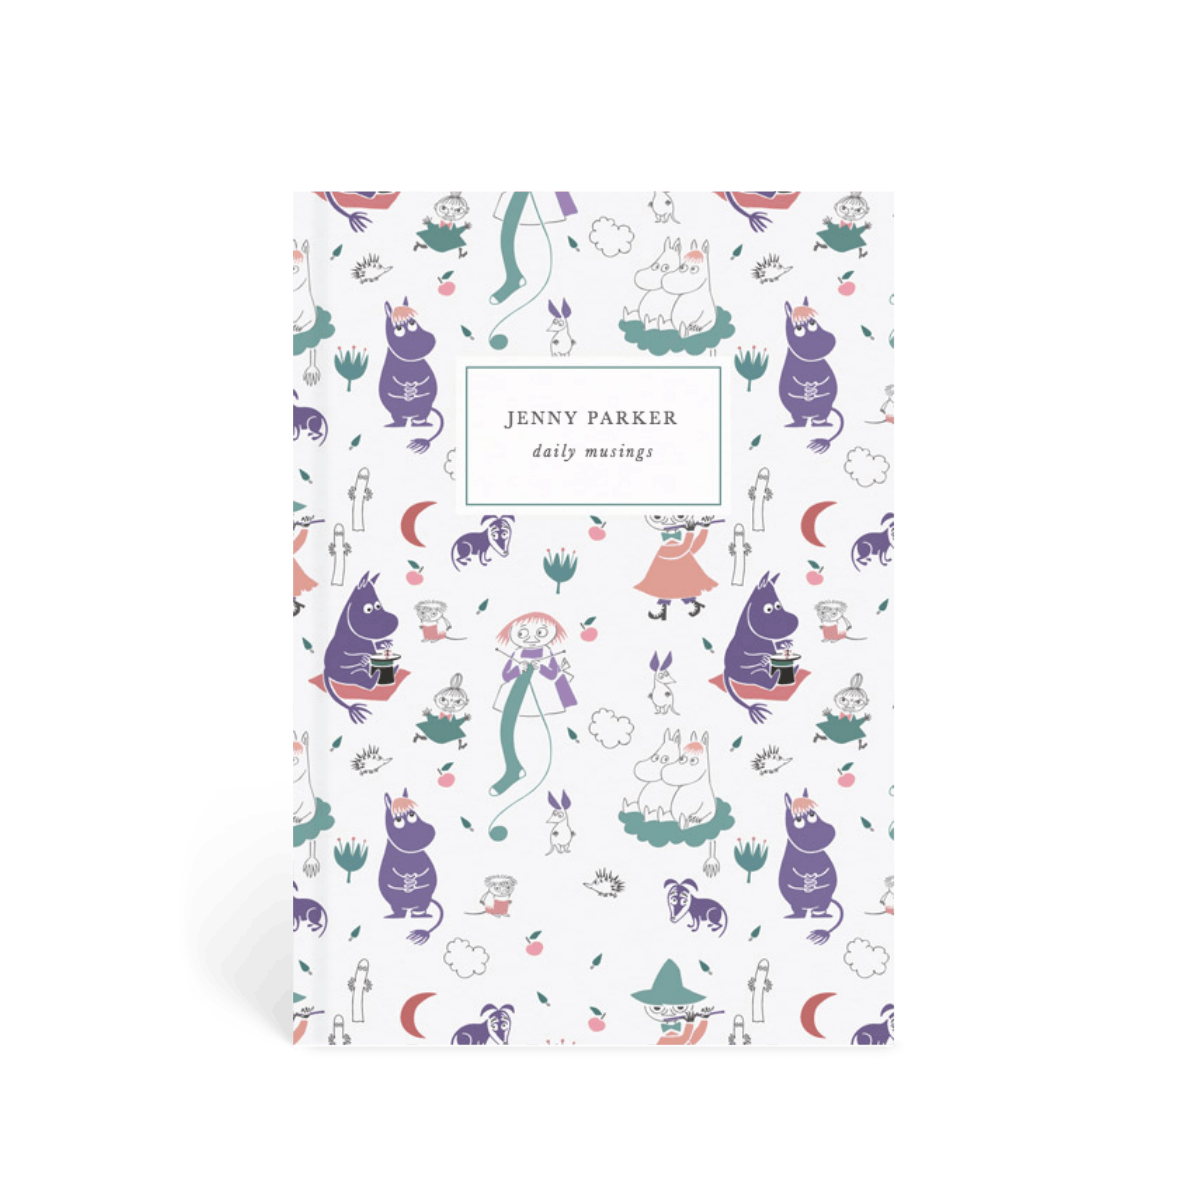 Https%3a%2f%2fwww.papier.com%2fproduct image%2f47749%2f25%2fpurple moomins 11713 front 1539082029.png?ixlib=rb 1.1